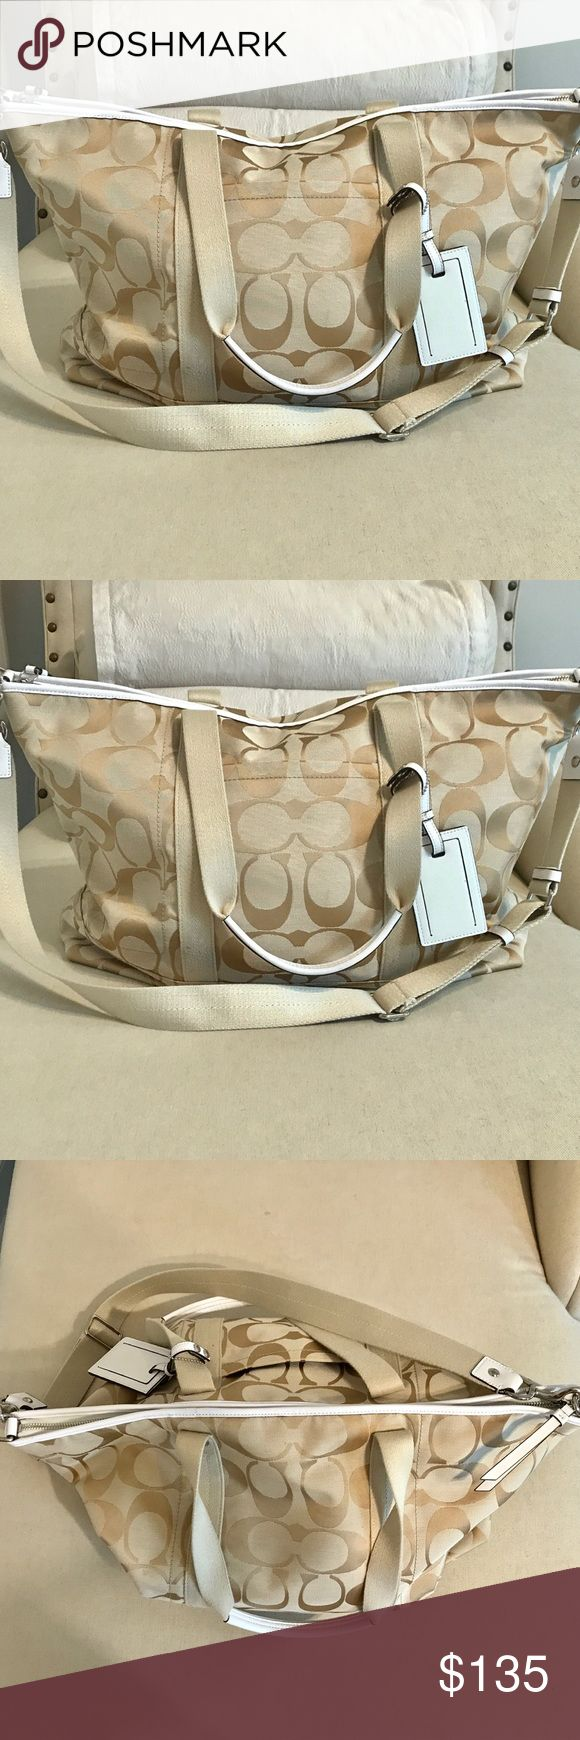 Coach Travel Bag Perfect condition Coach travel bag. Gold and cream signature. One pouch outside and 3 pouches plus zipper pouch inside. Removable shoulder strap. Lots of room. Coach Bags Travel Bags